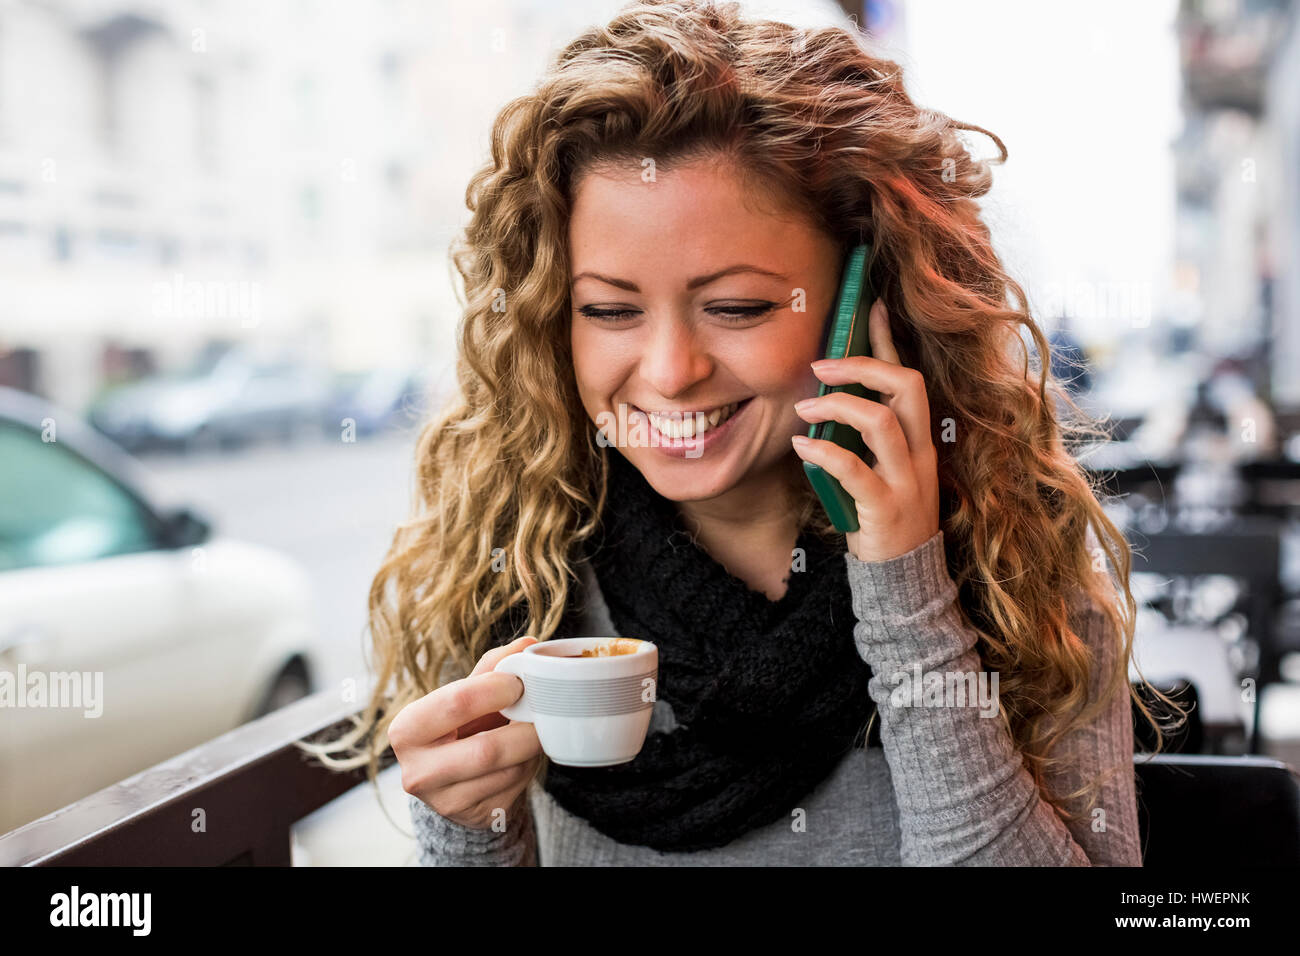 Woman in cafe holding espresso cup making telephone call smiling - Stock Image